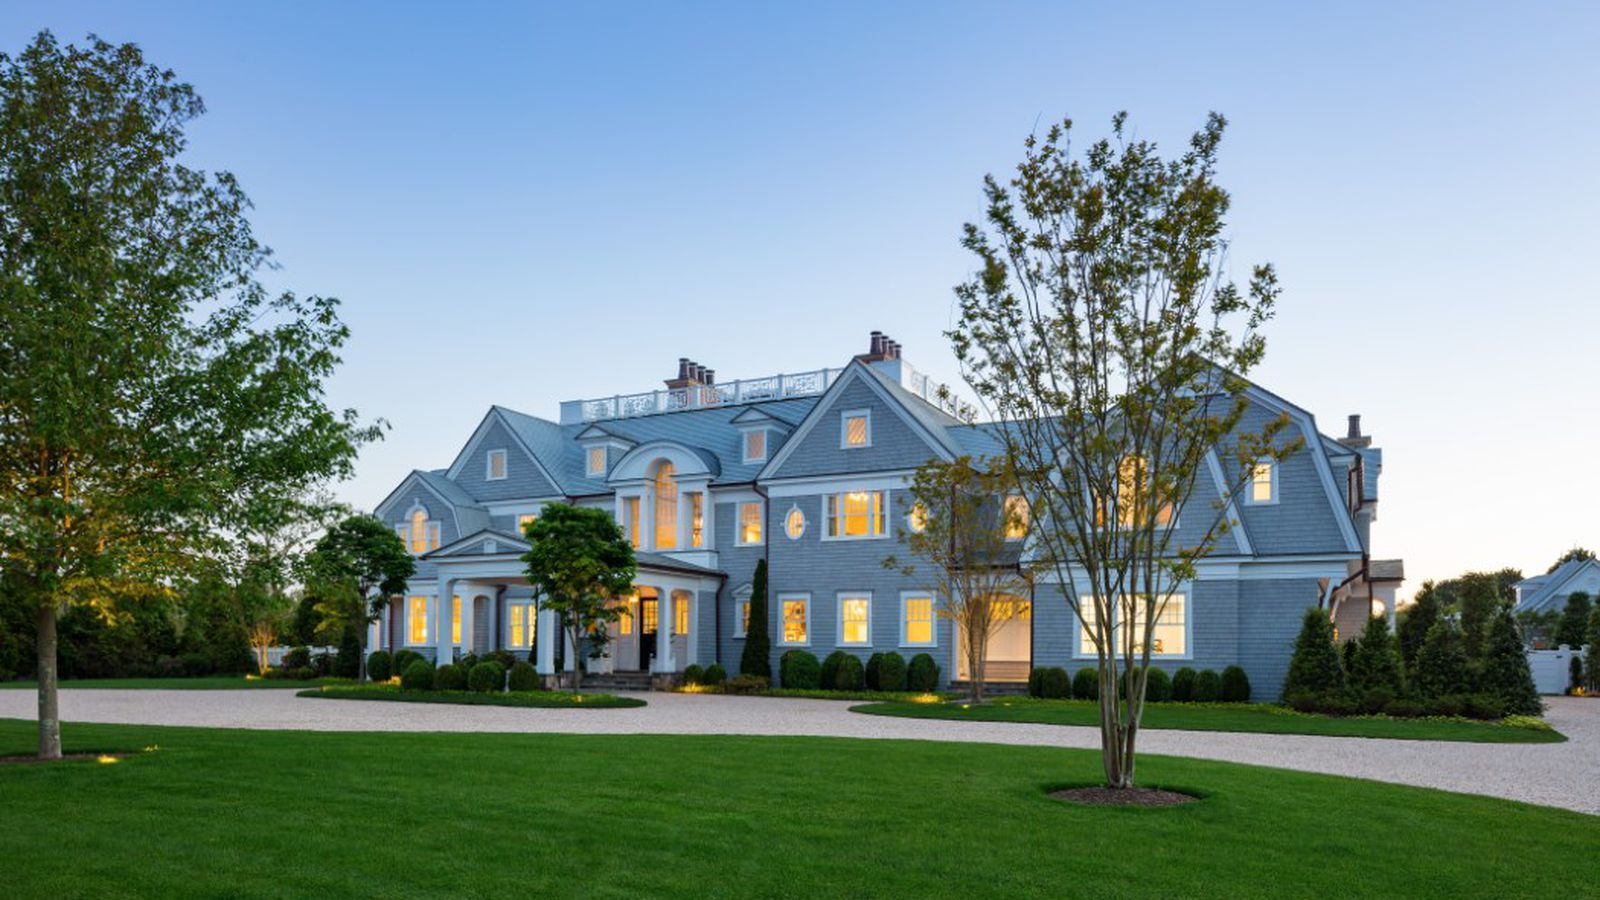 The Largest House For Sale In The Hamptons Just Hit The